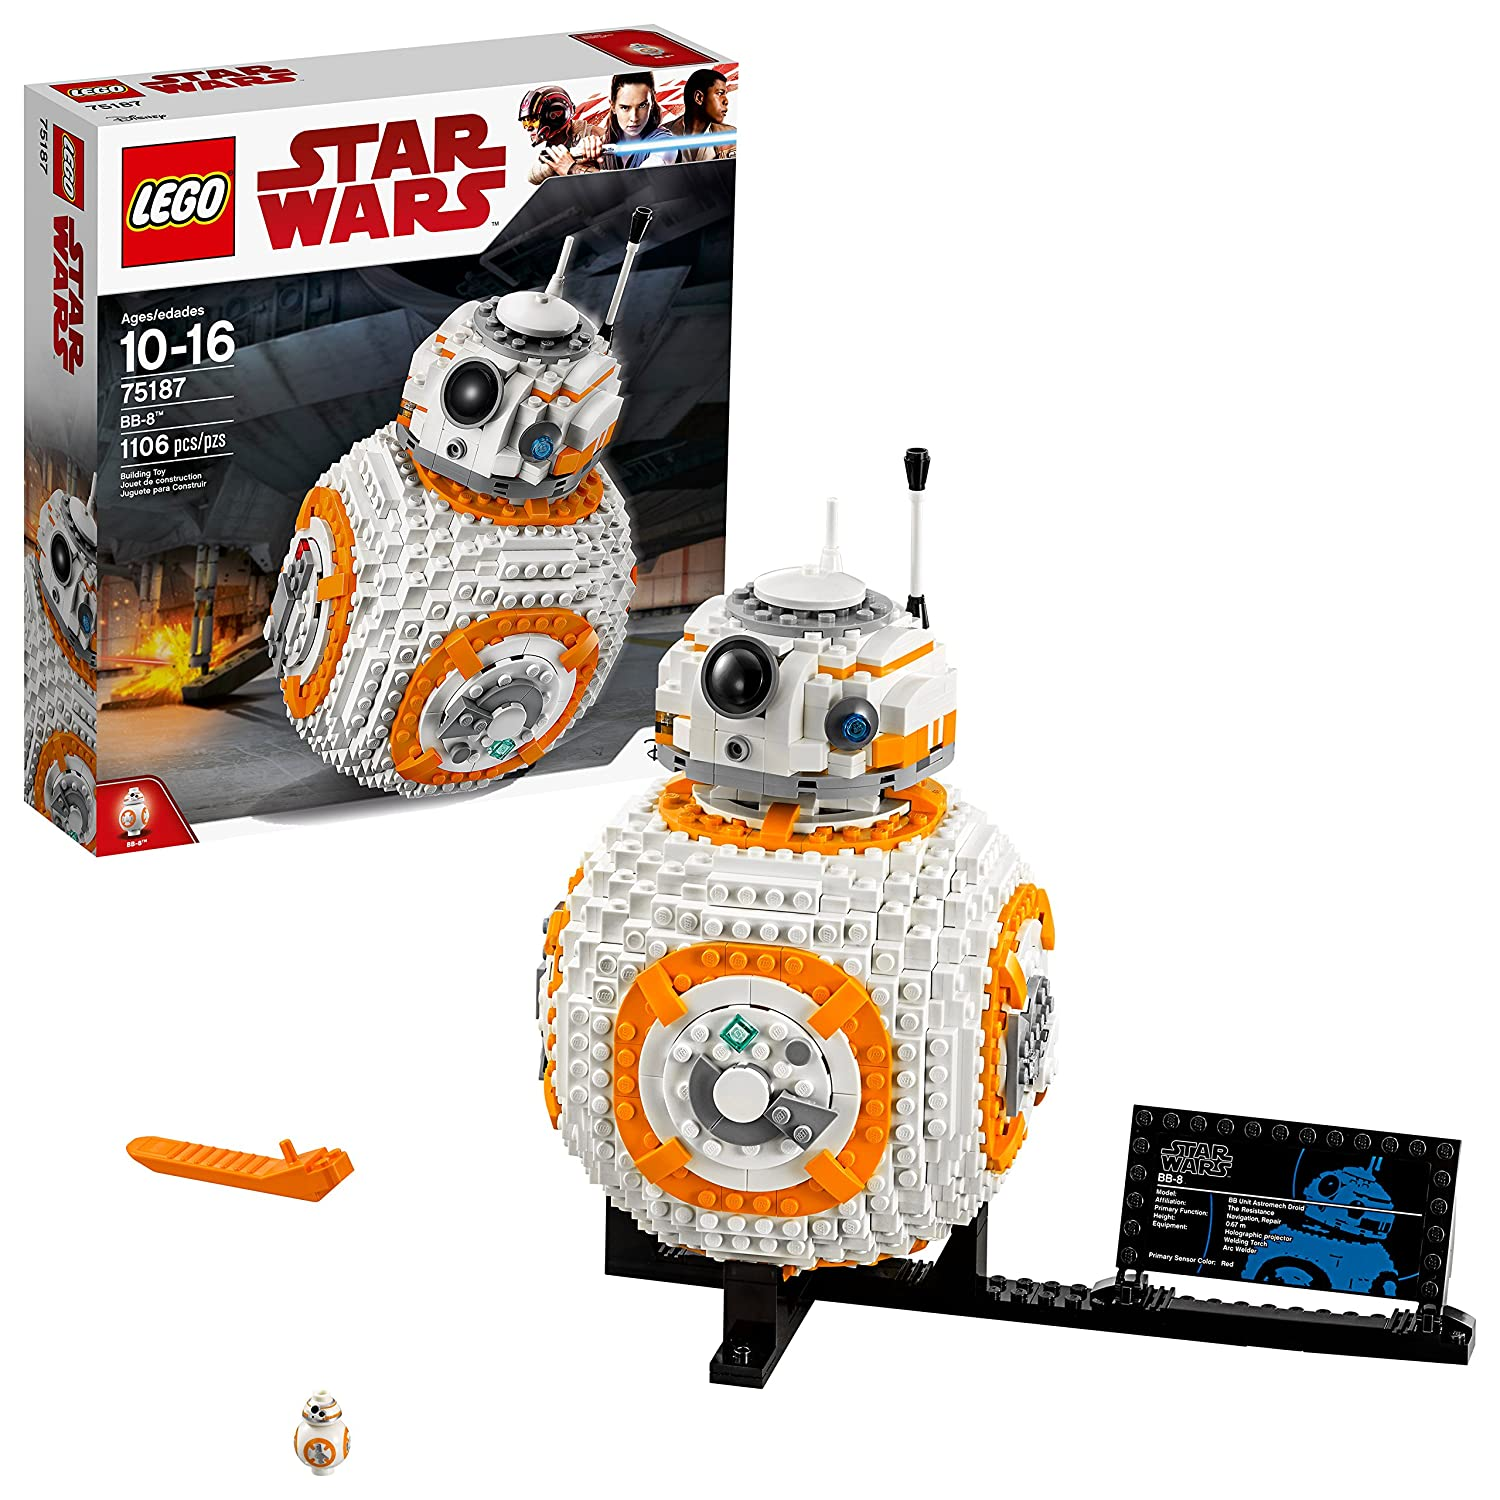 Top 10 Best LEGO Star Wars Kits